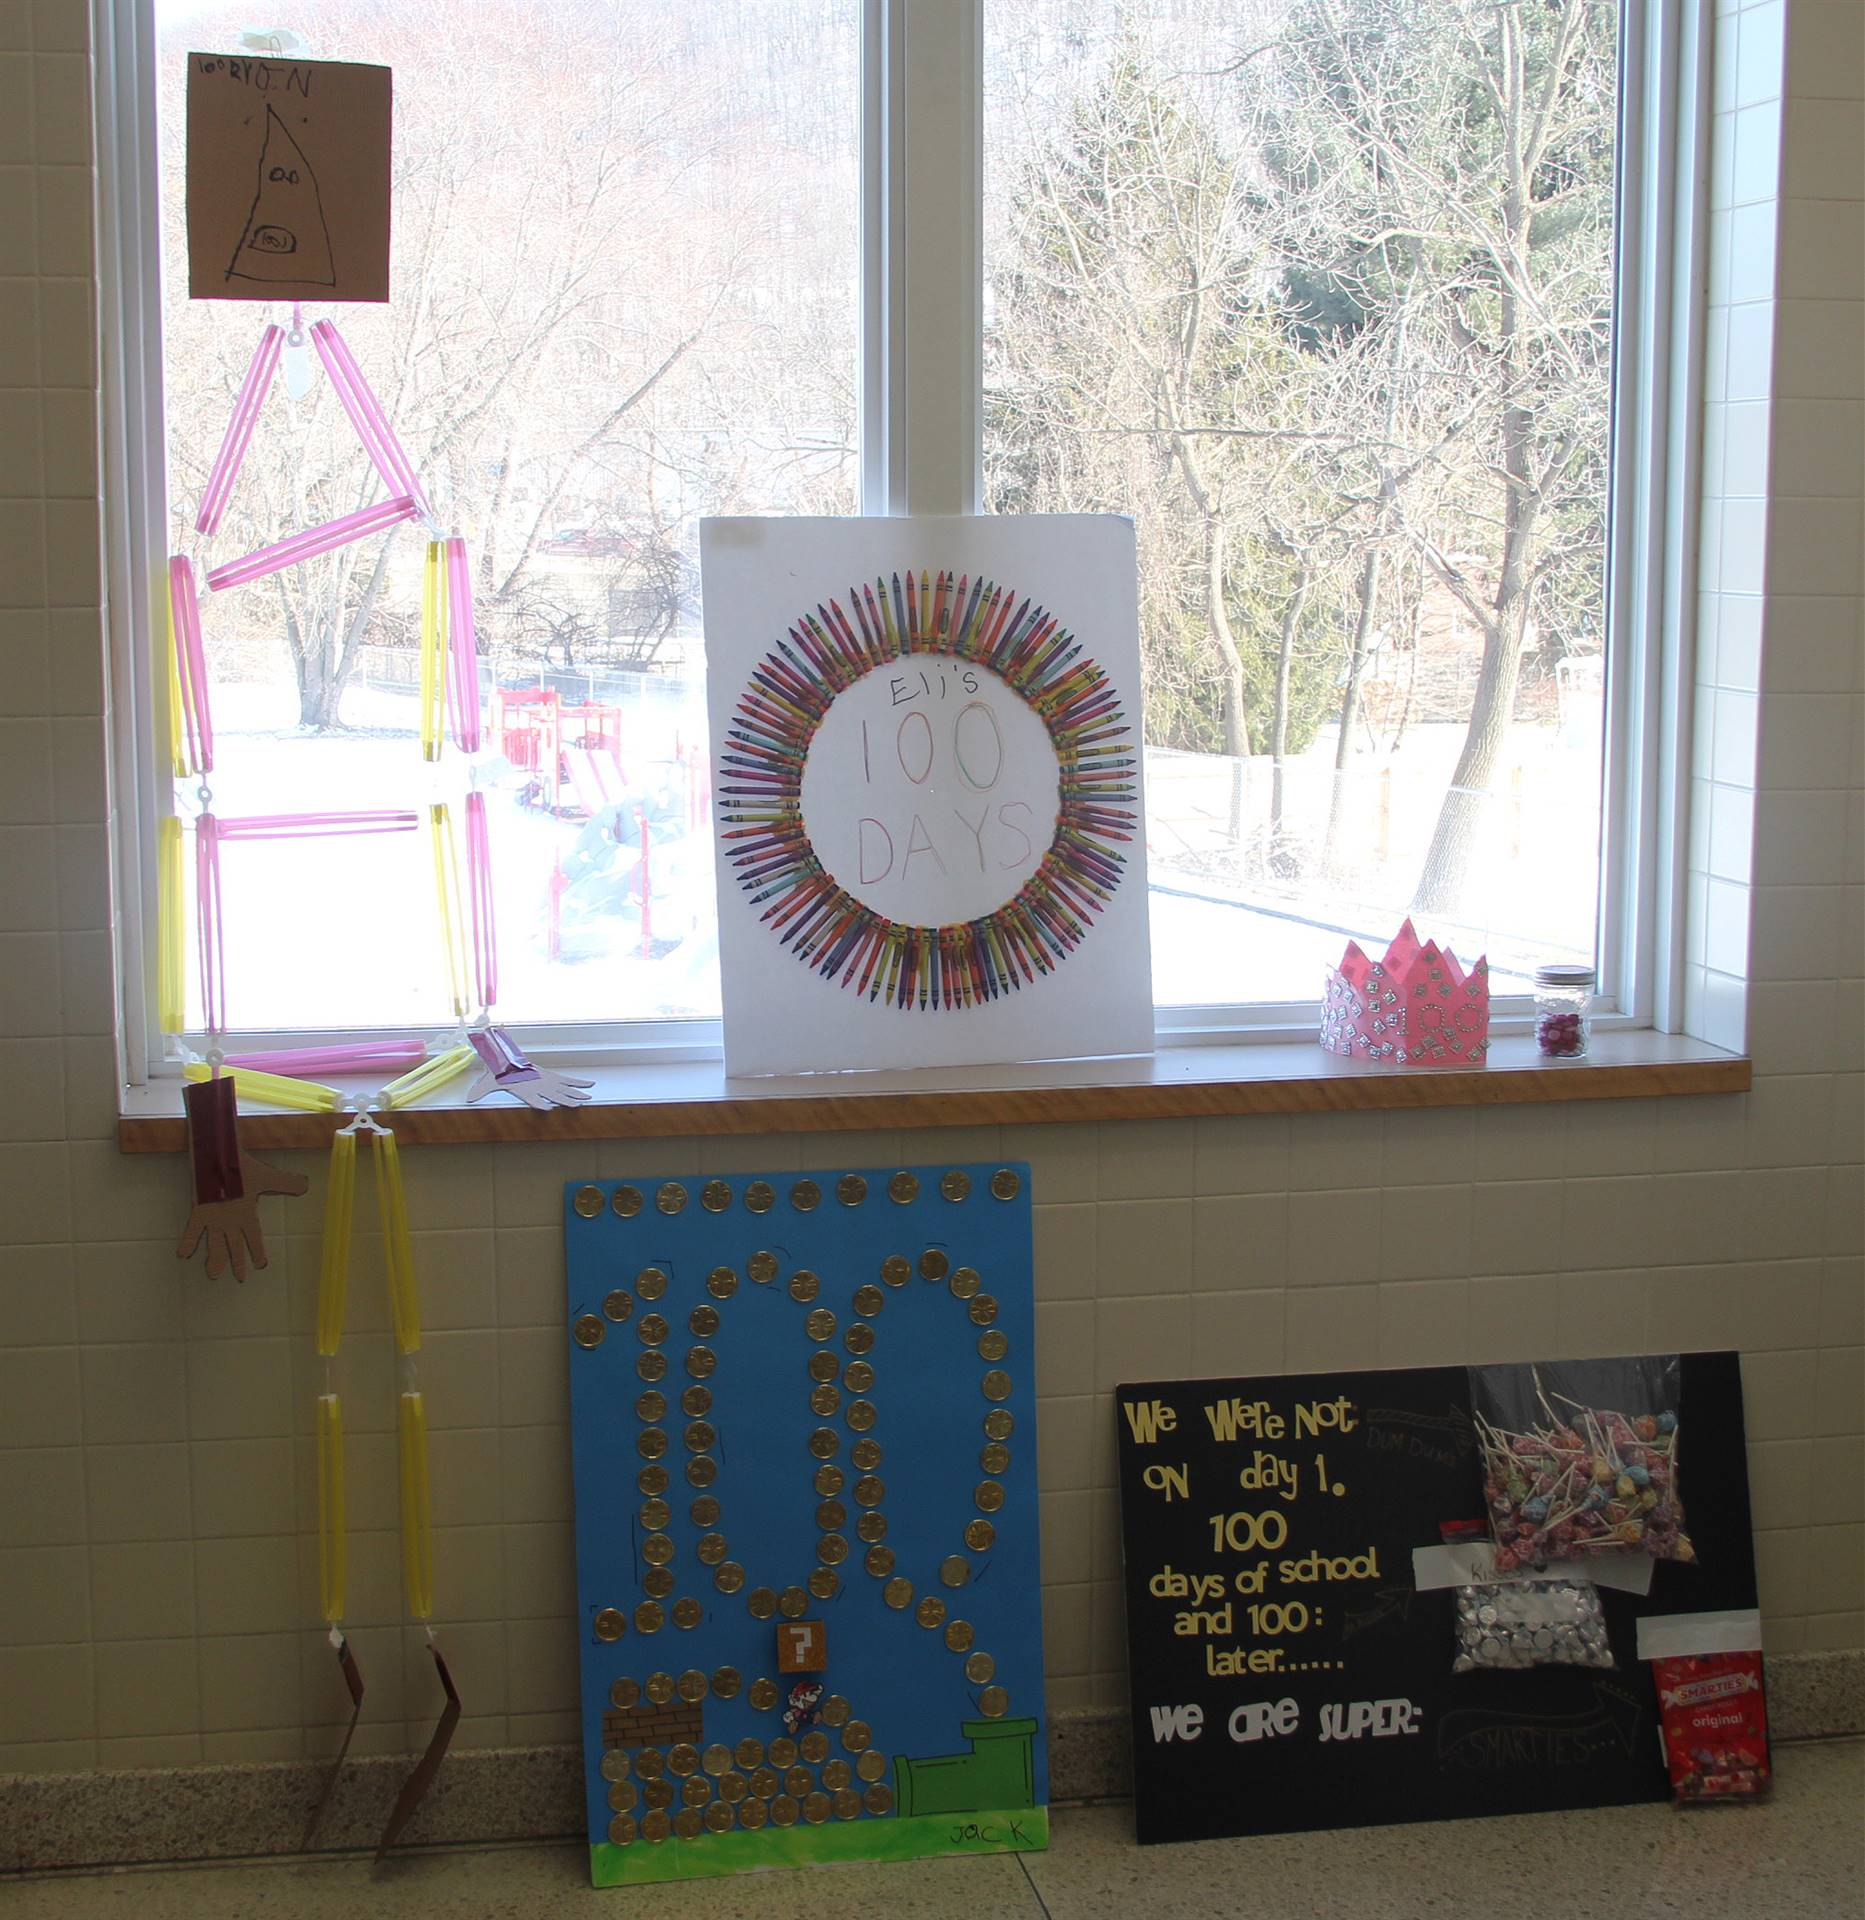 additional 100 days of school projects in hallway